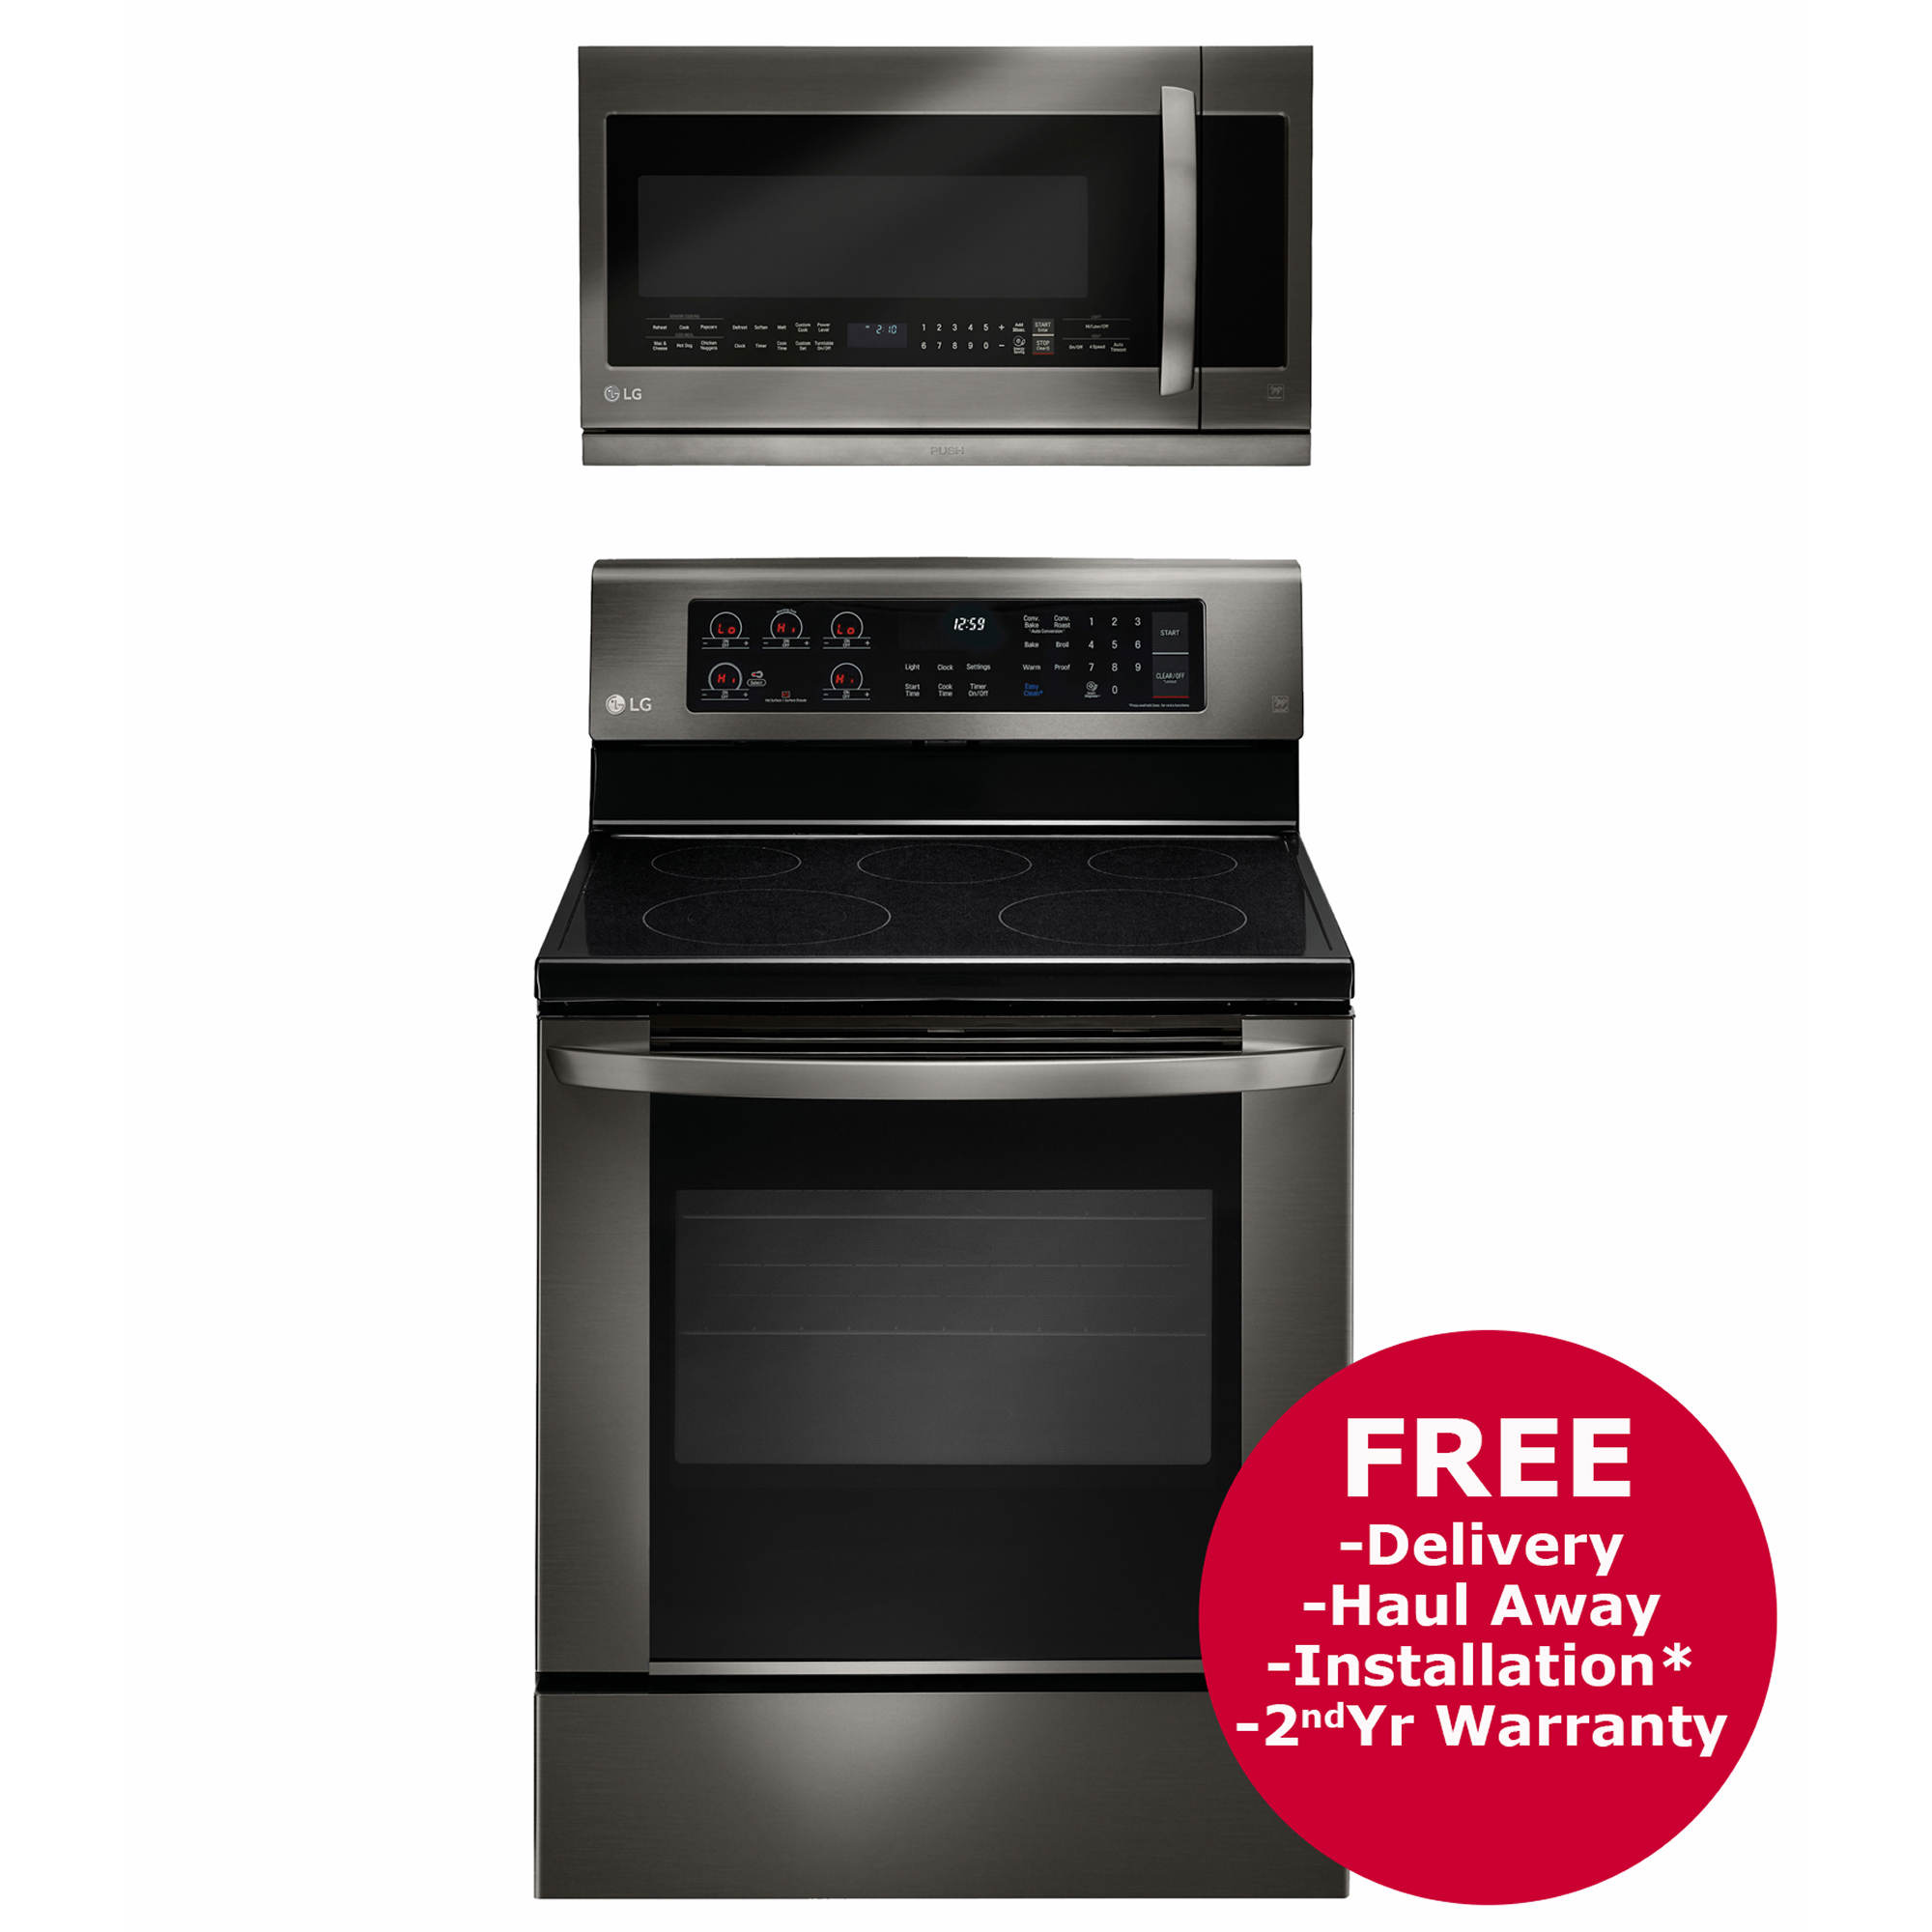 Lg single oven electric range and over the range microwave black stainless bj 39 s wholesale club - Red over the range microwave ...